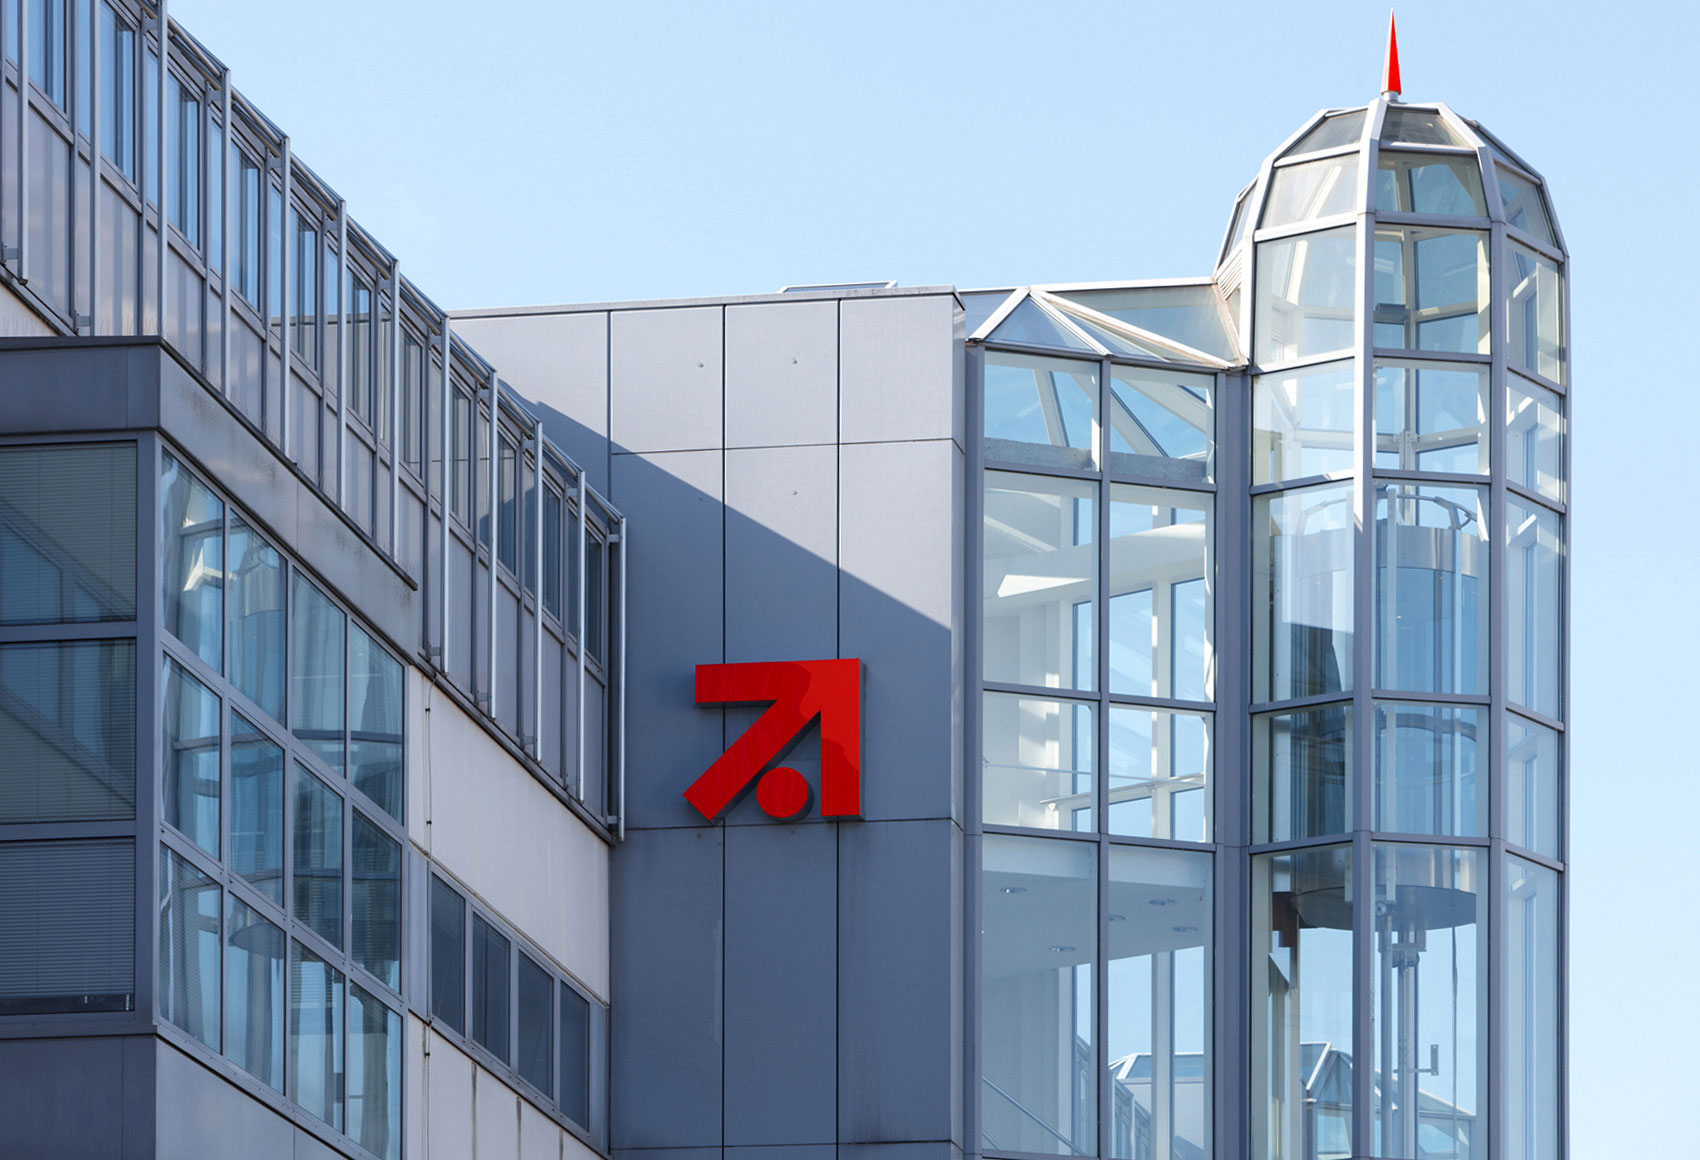 image from ProSiebenSat.1 Selects Cantemo Portal to Replace Current Media Asset Management System